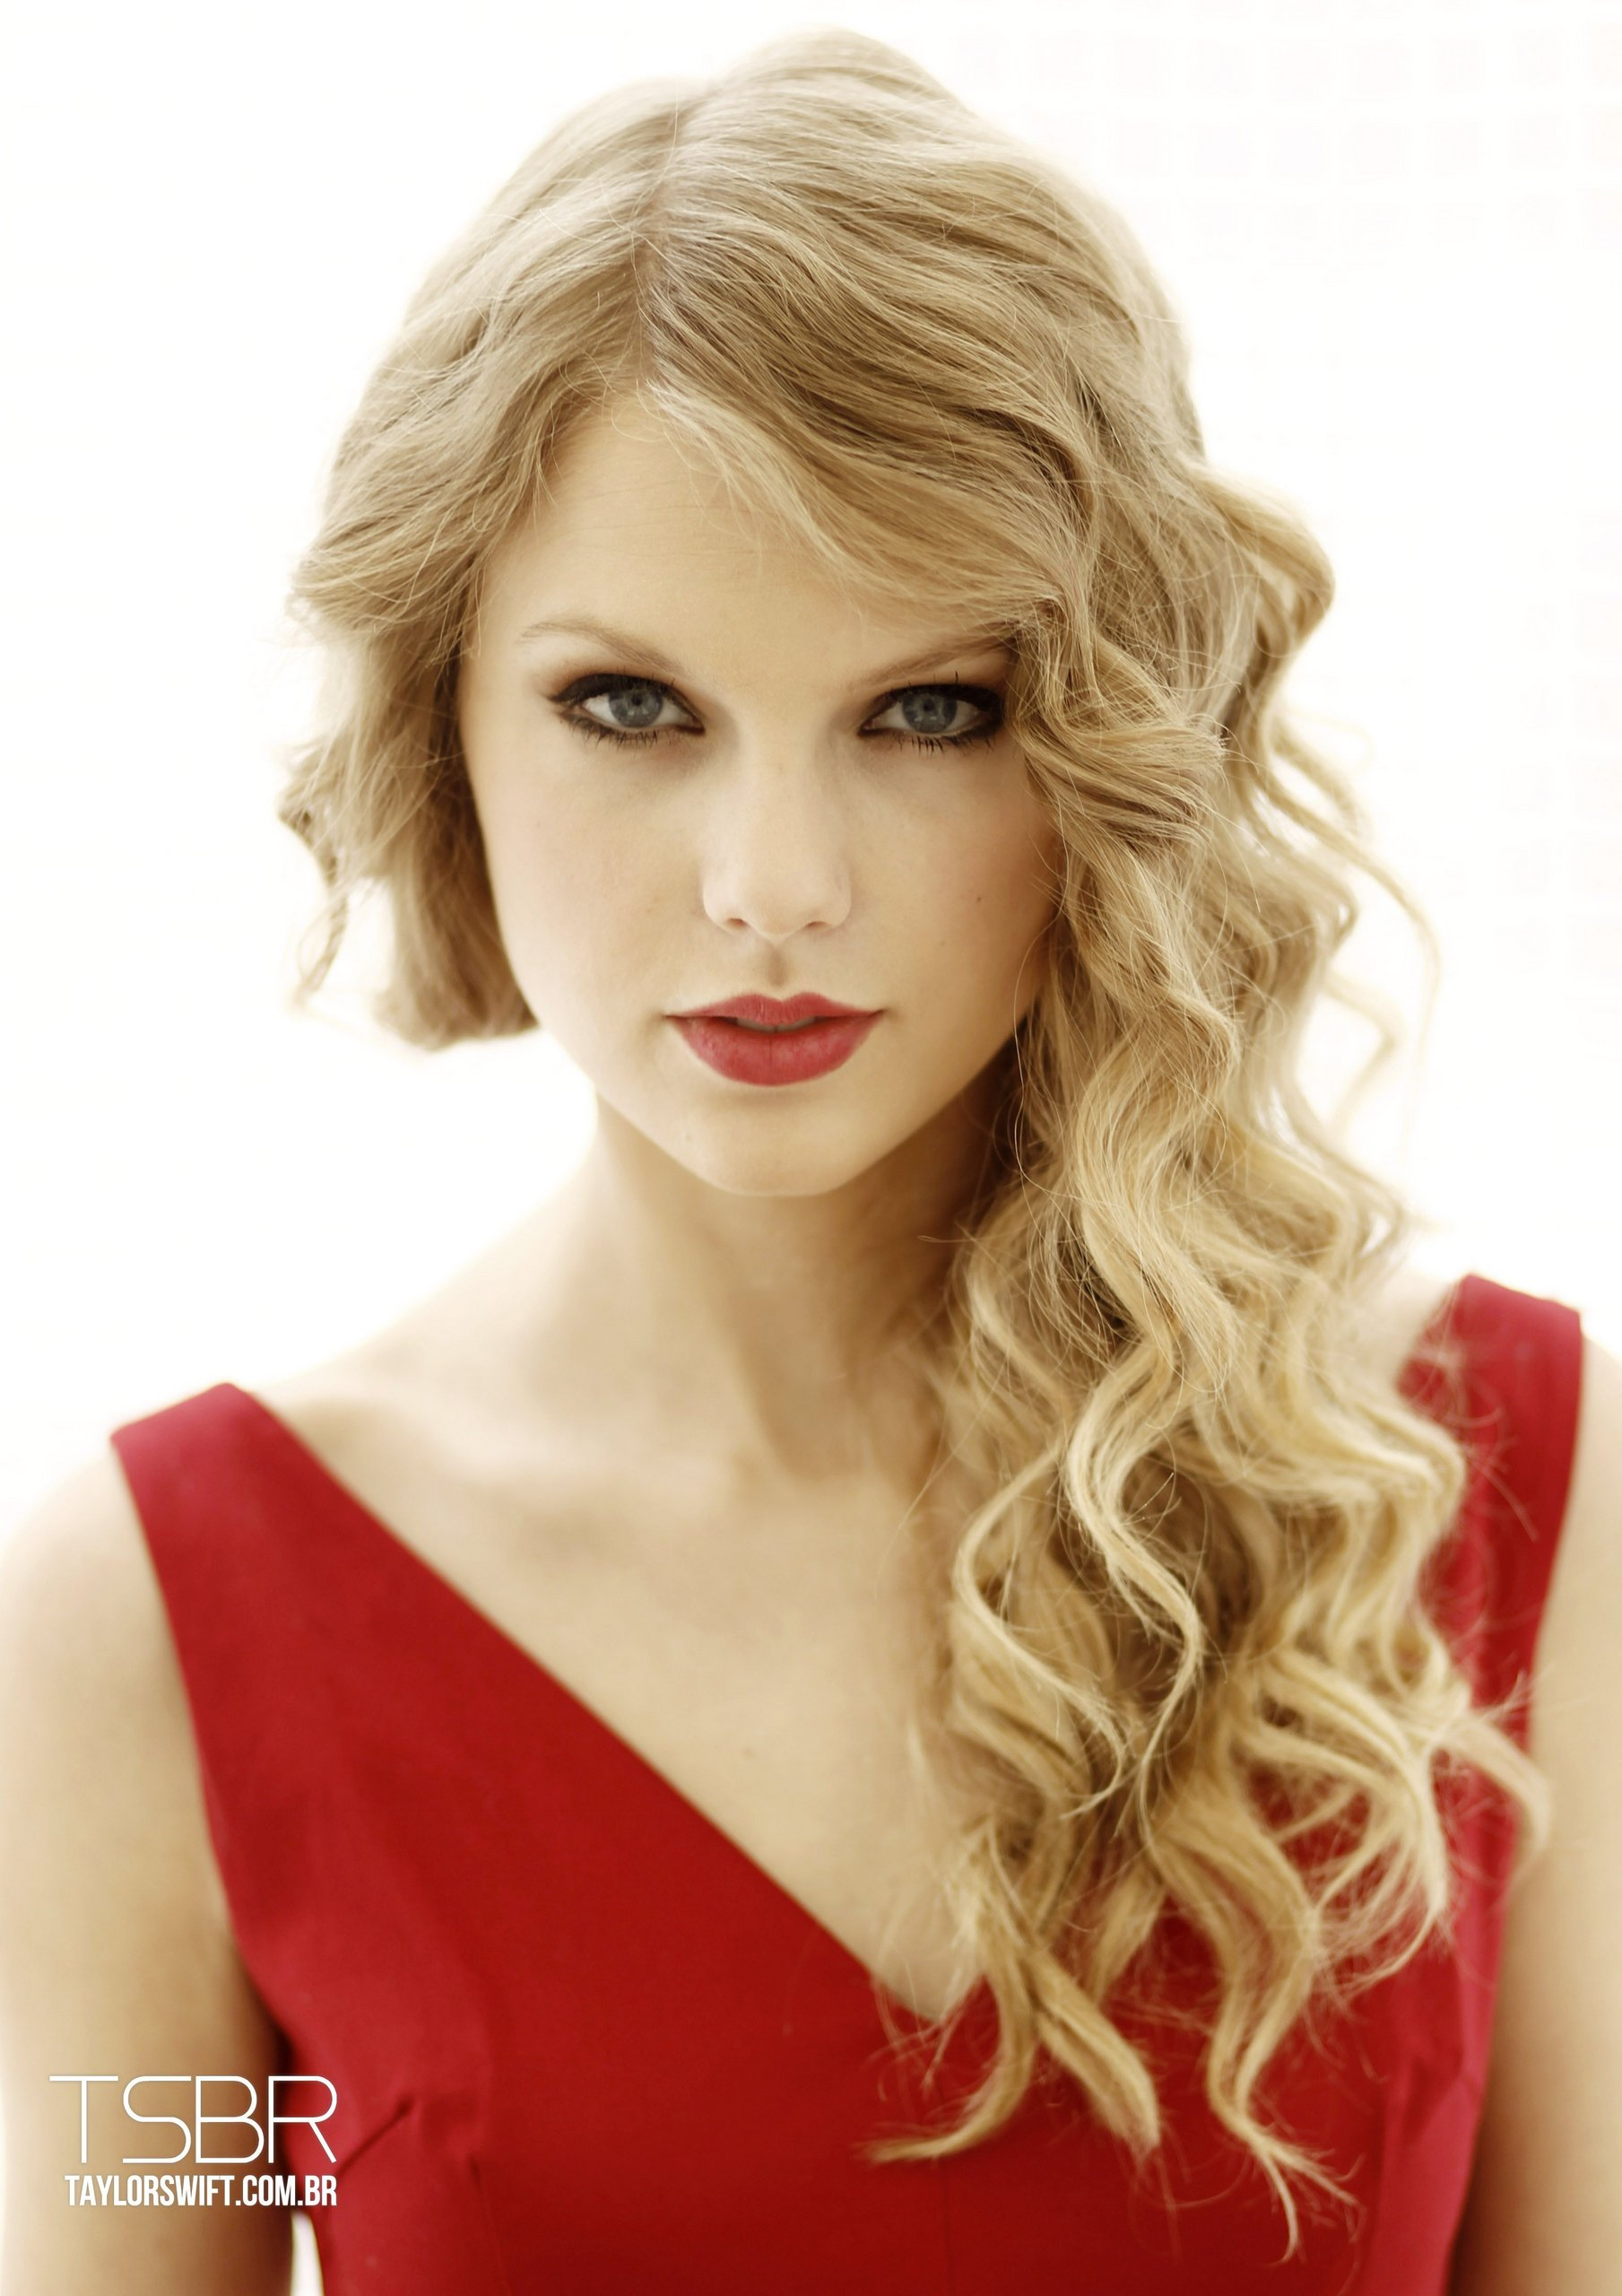 Photography Exploration Hd Taylor Swift Gallery